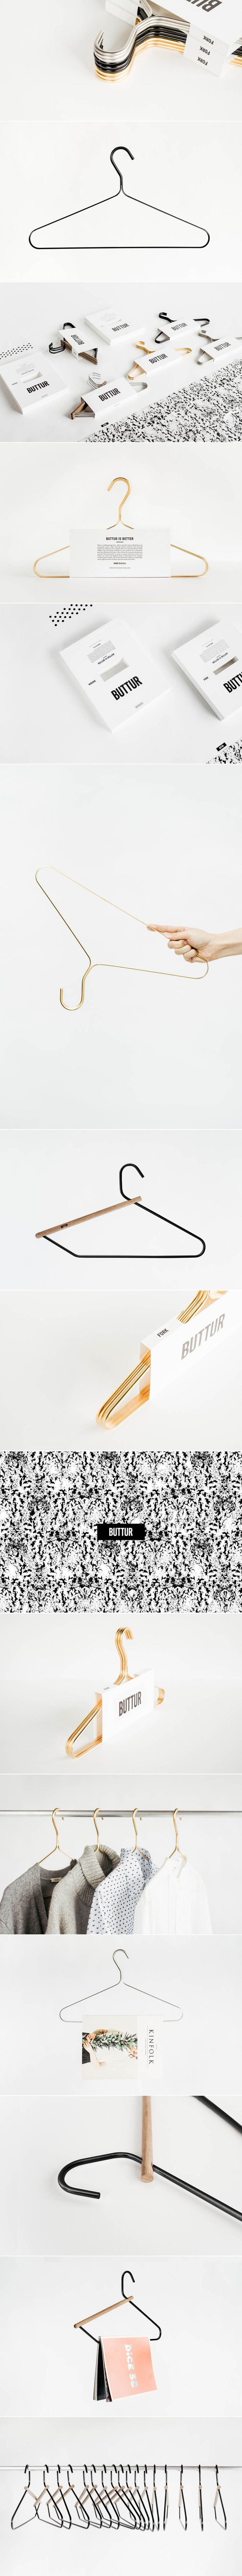 Packaging for Buttur Clothing Hangers